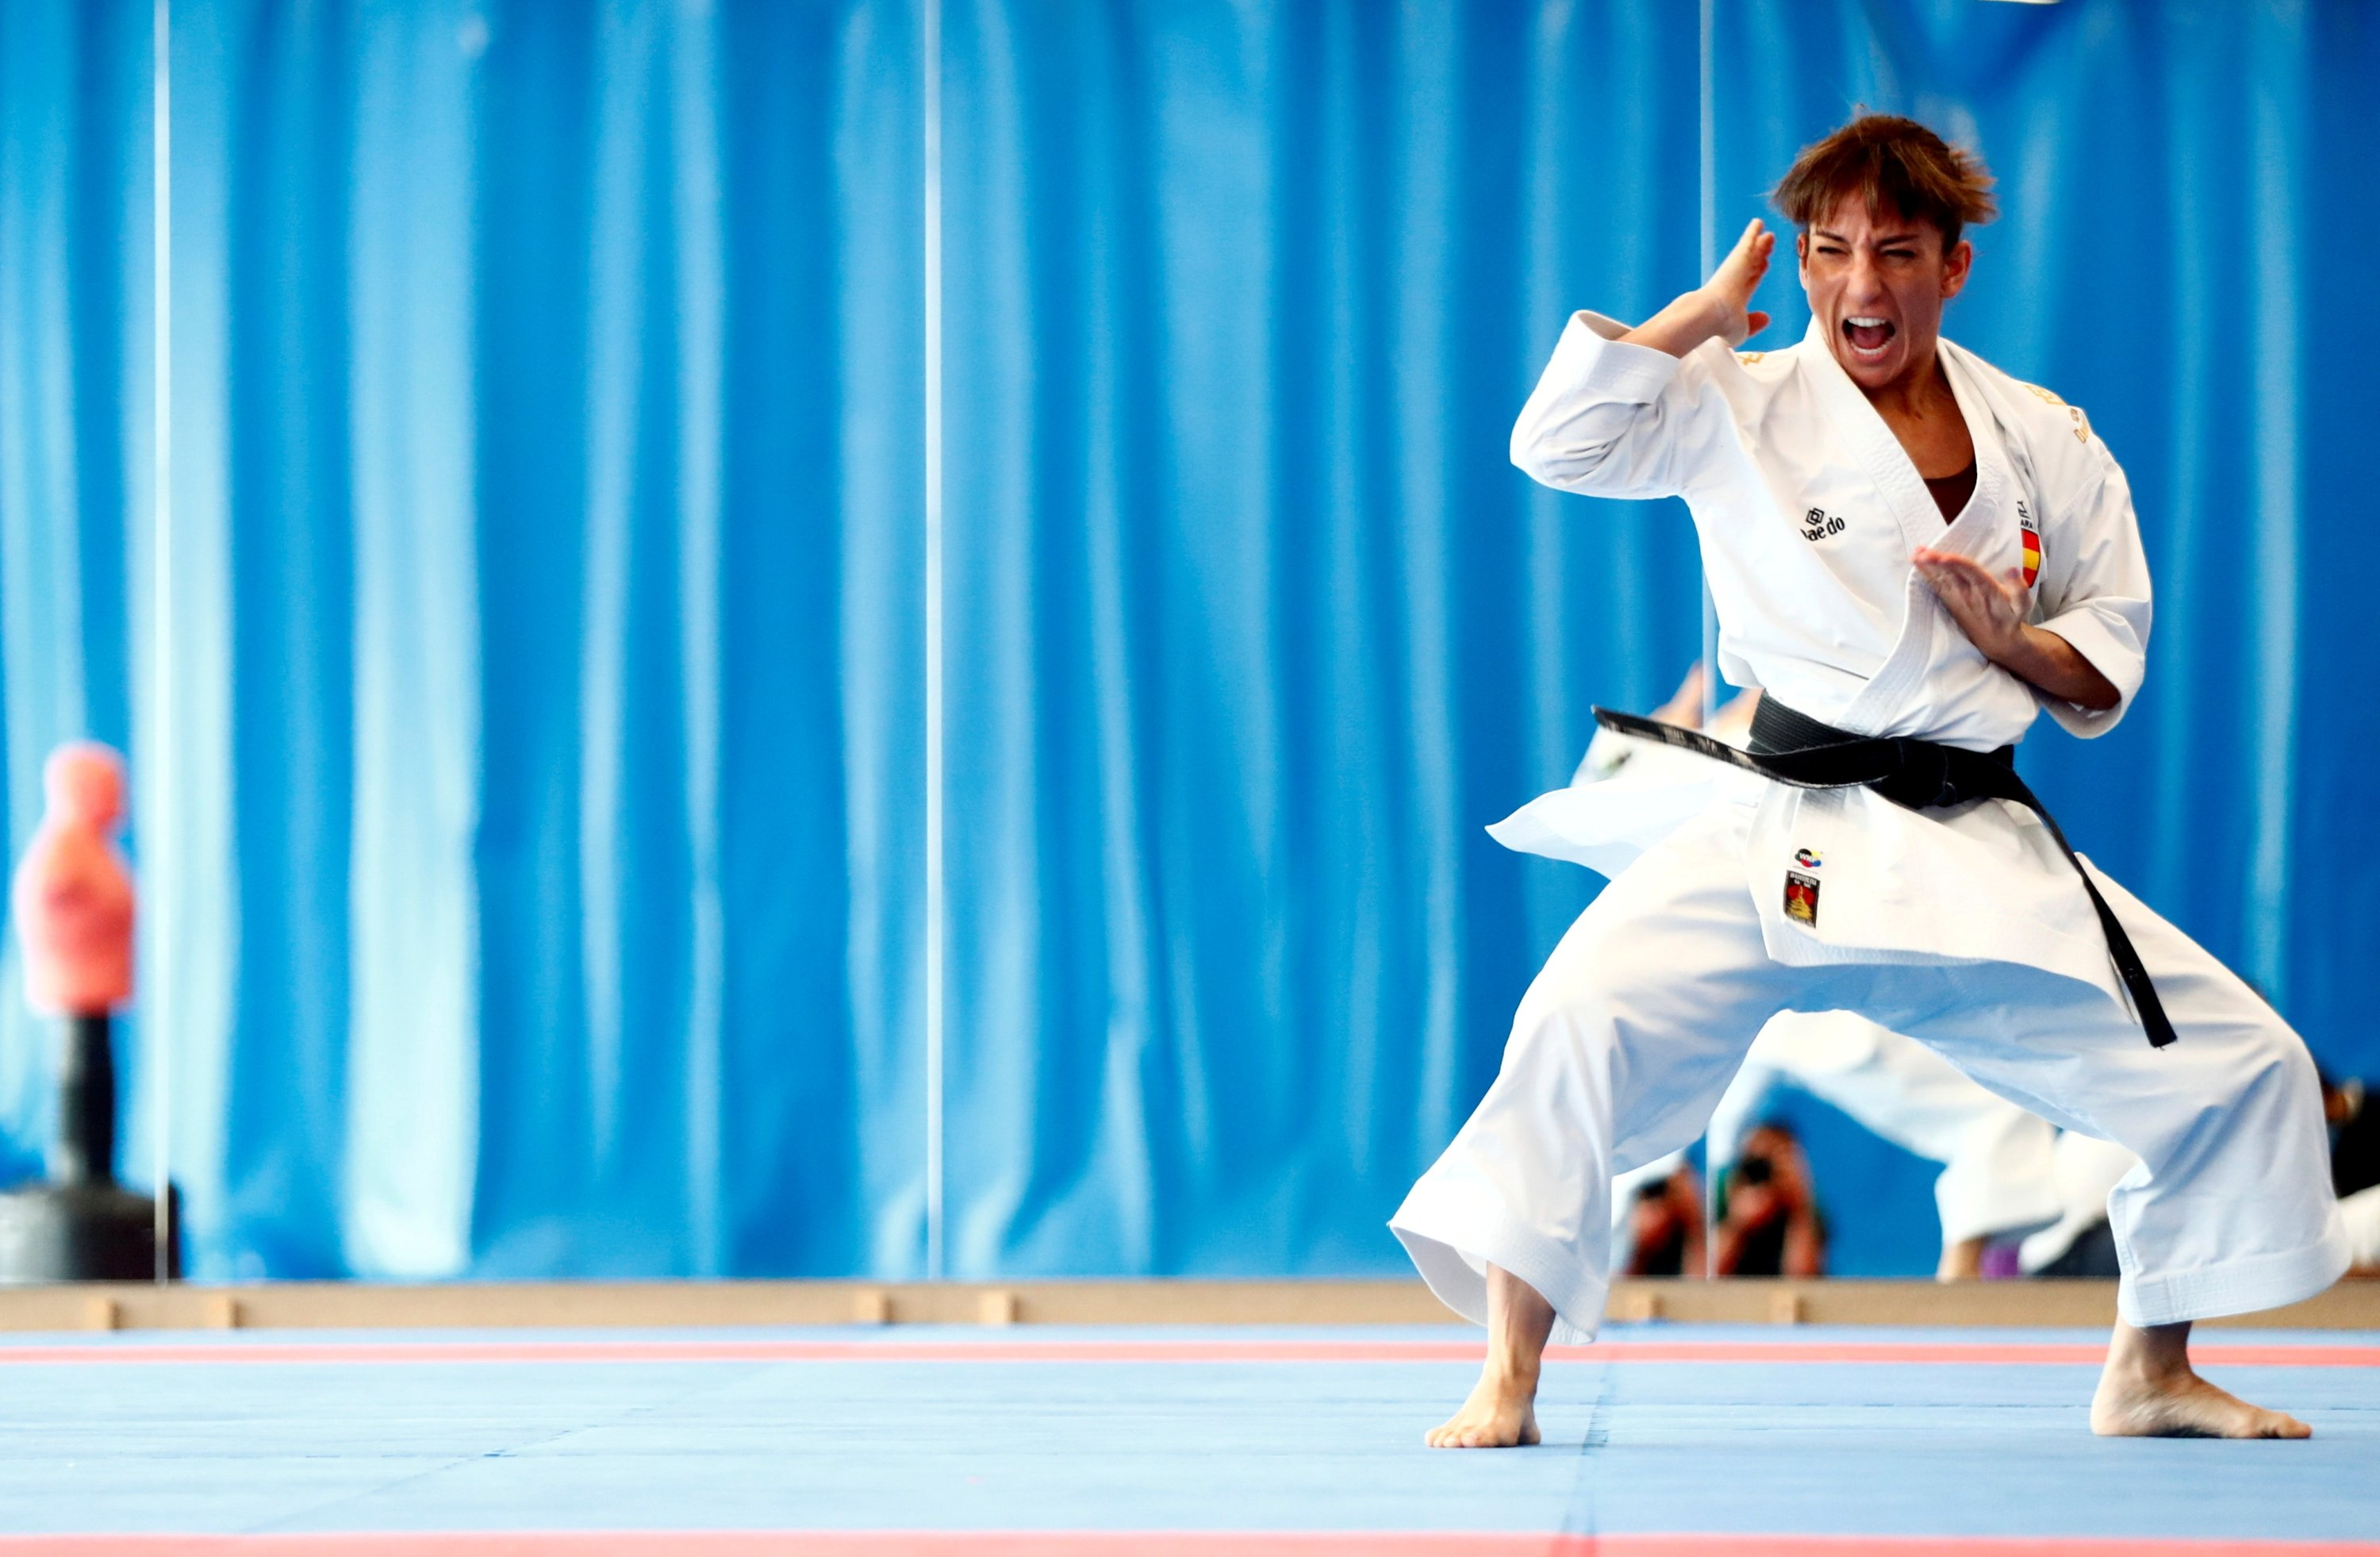 Spain's Karate kata athlete Sandra Sanchez, current World and European Champion, strikes a pose during a training session in Madrid while preparing for the upcoming Tokyo Olympic Games, March 3, 2021. (Reuters Photo)